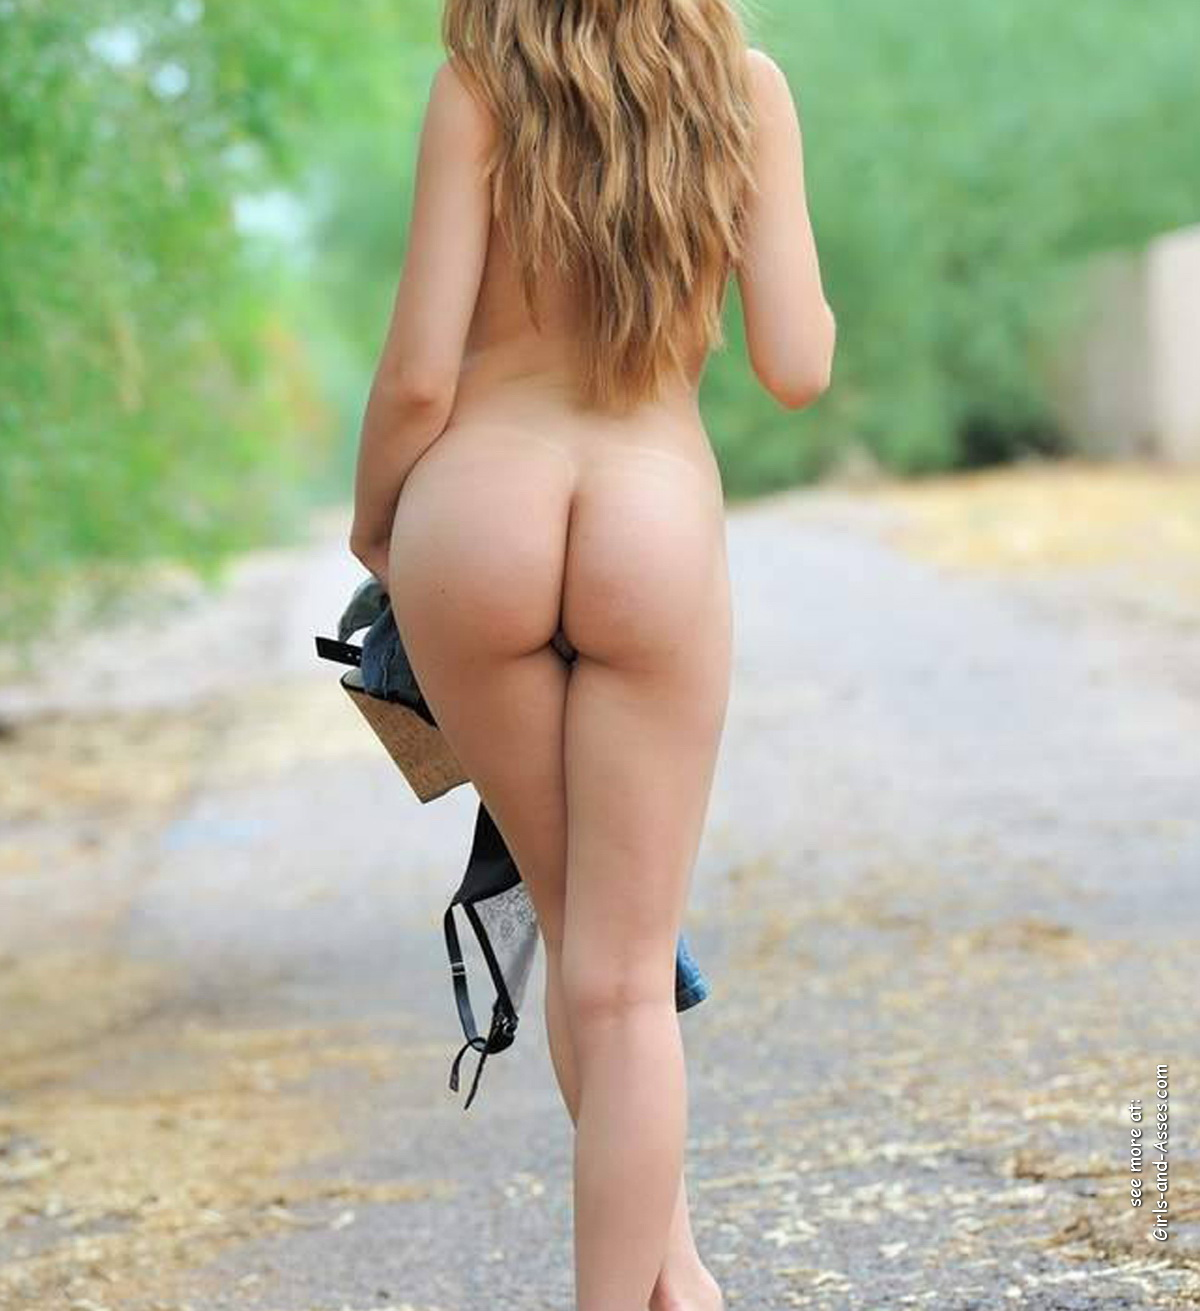 butts in nature naked woman on highway photo 03748